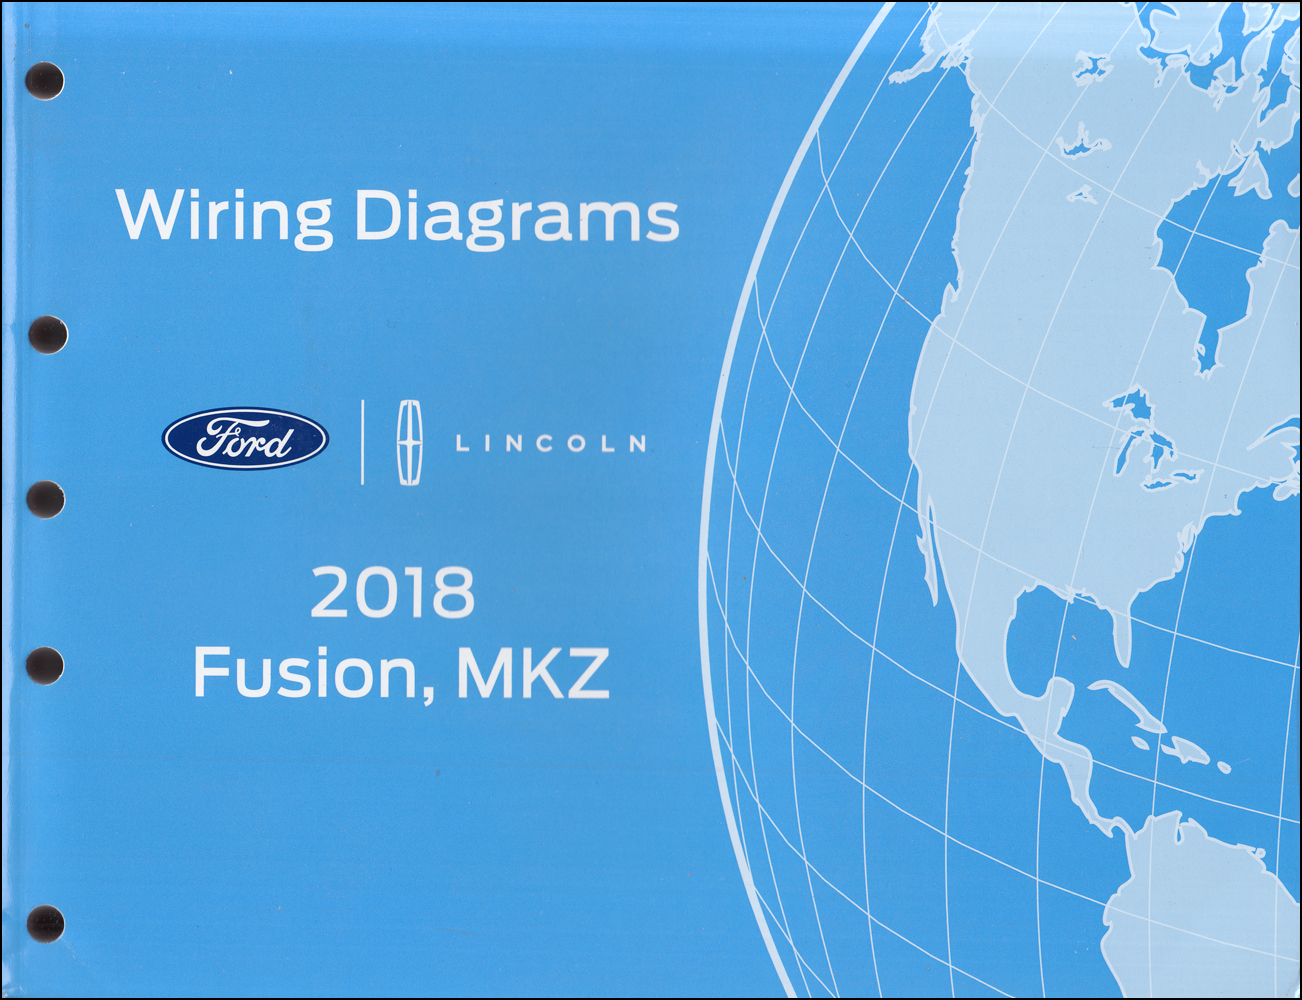 2018 Ford Fusion Lincoln MKZ Wiring Diagram Manual Original Gasoline models